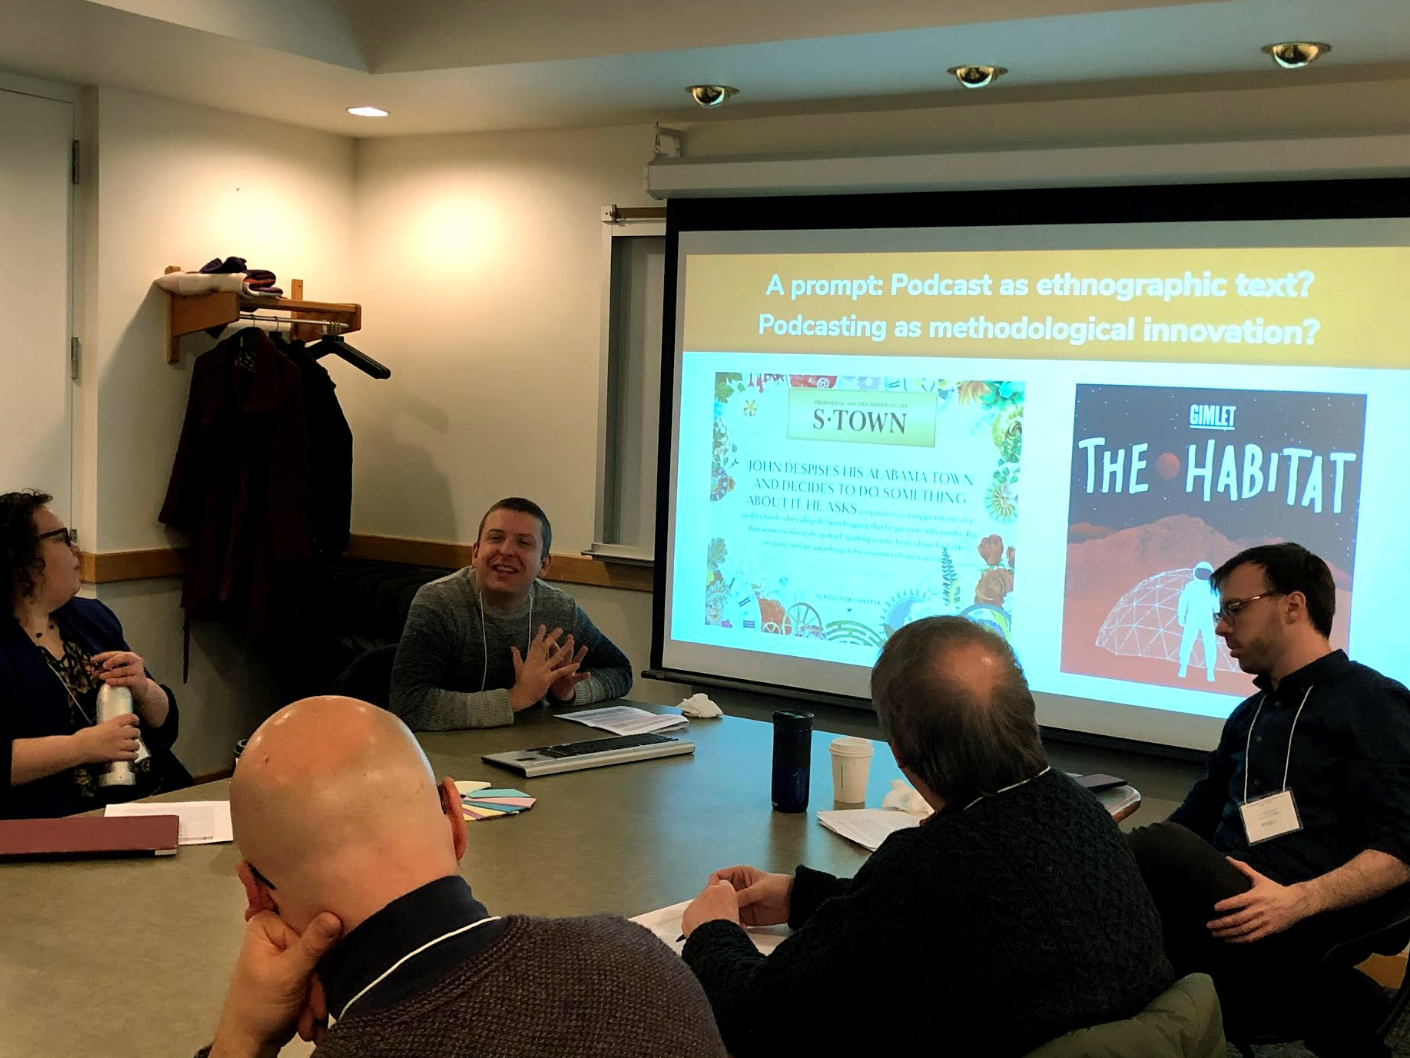 image of 5 people seated around a conference table making conversation. There is a screen in the background which has a slide up which says: A prompt Podcast as ethnographic text? Podcasting as methodological innovation?